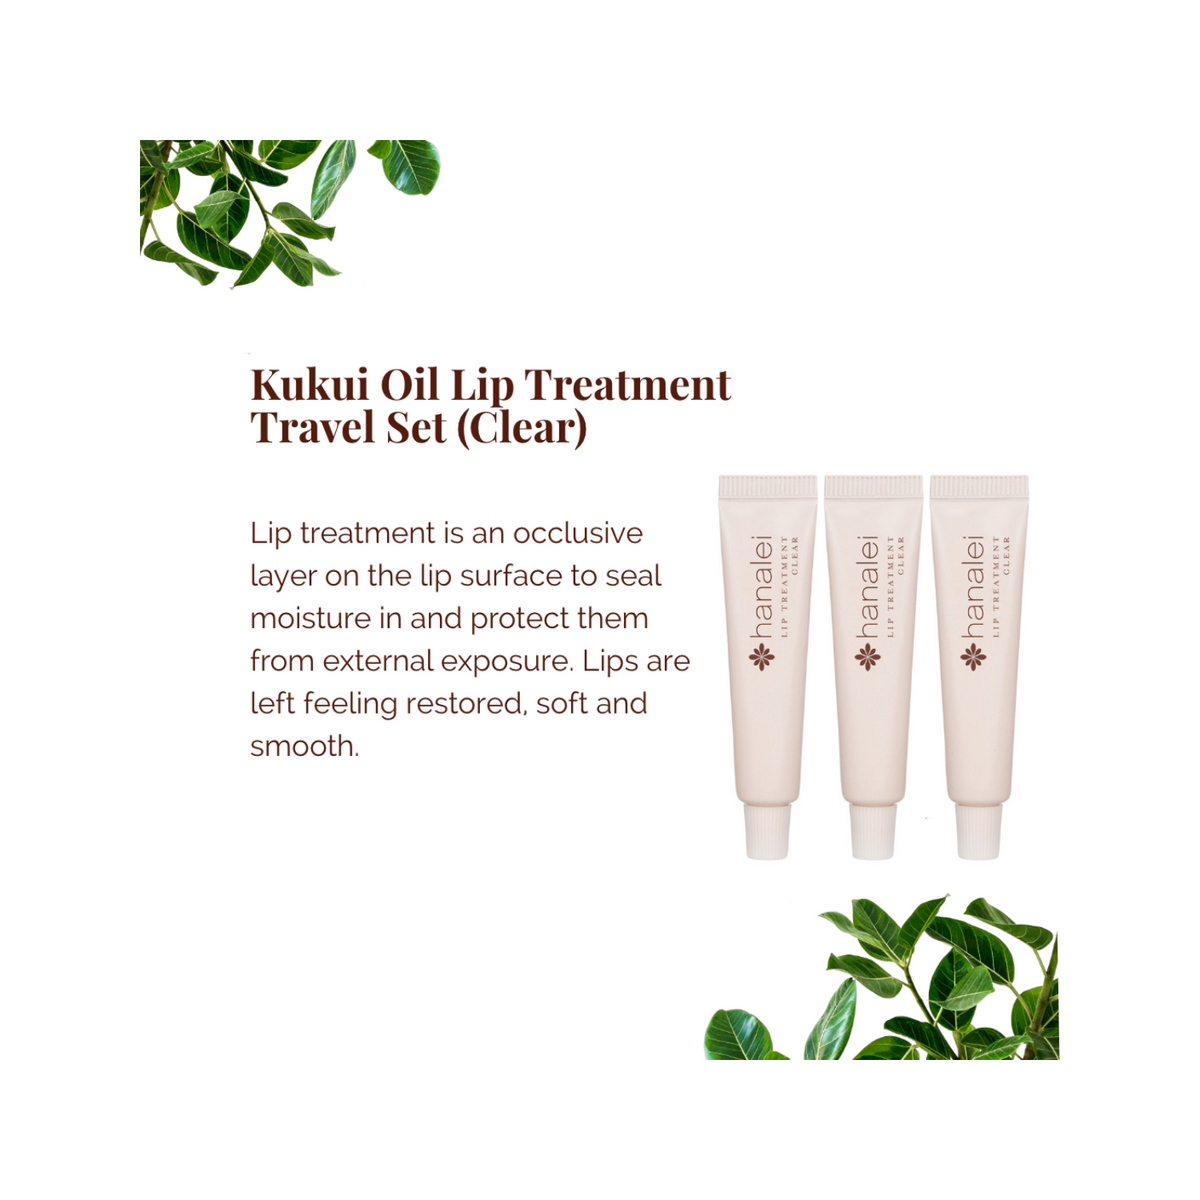 Kukui Oil Lip Treatment (Clear)